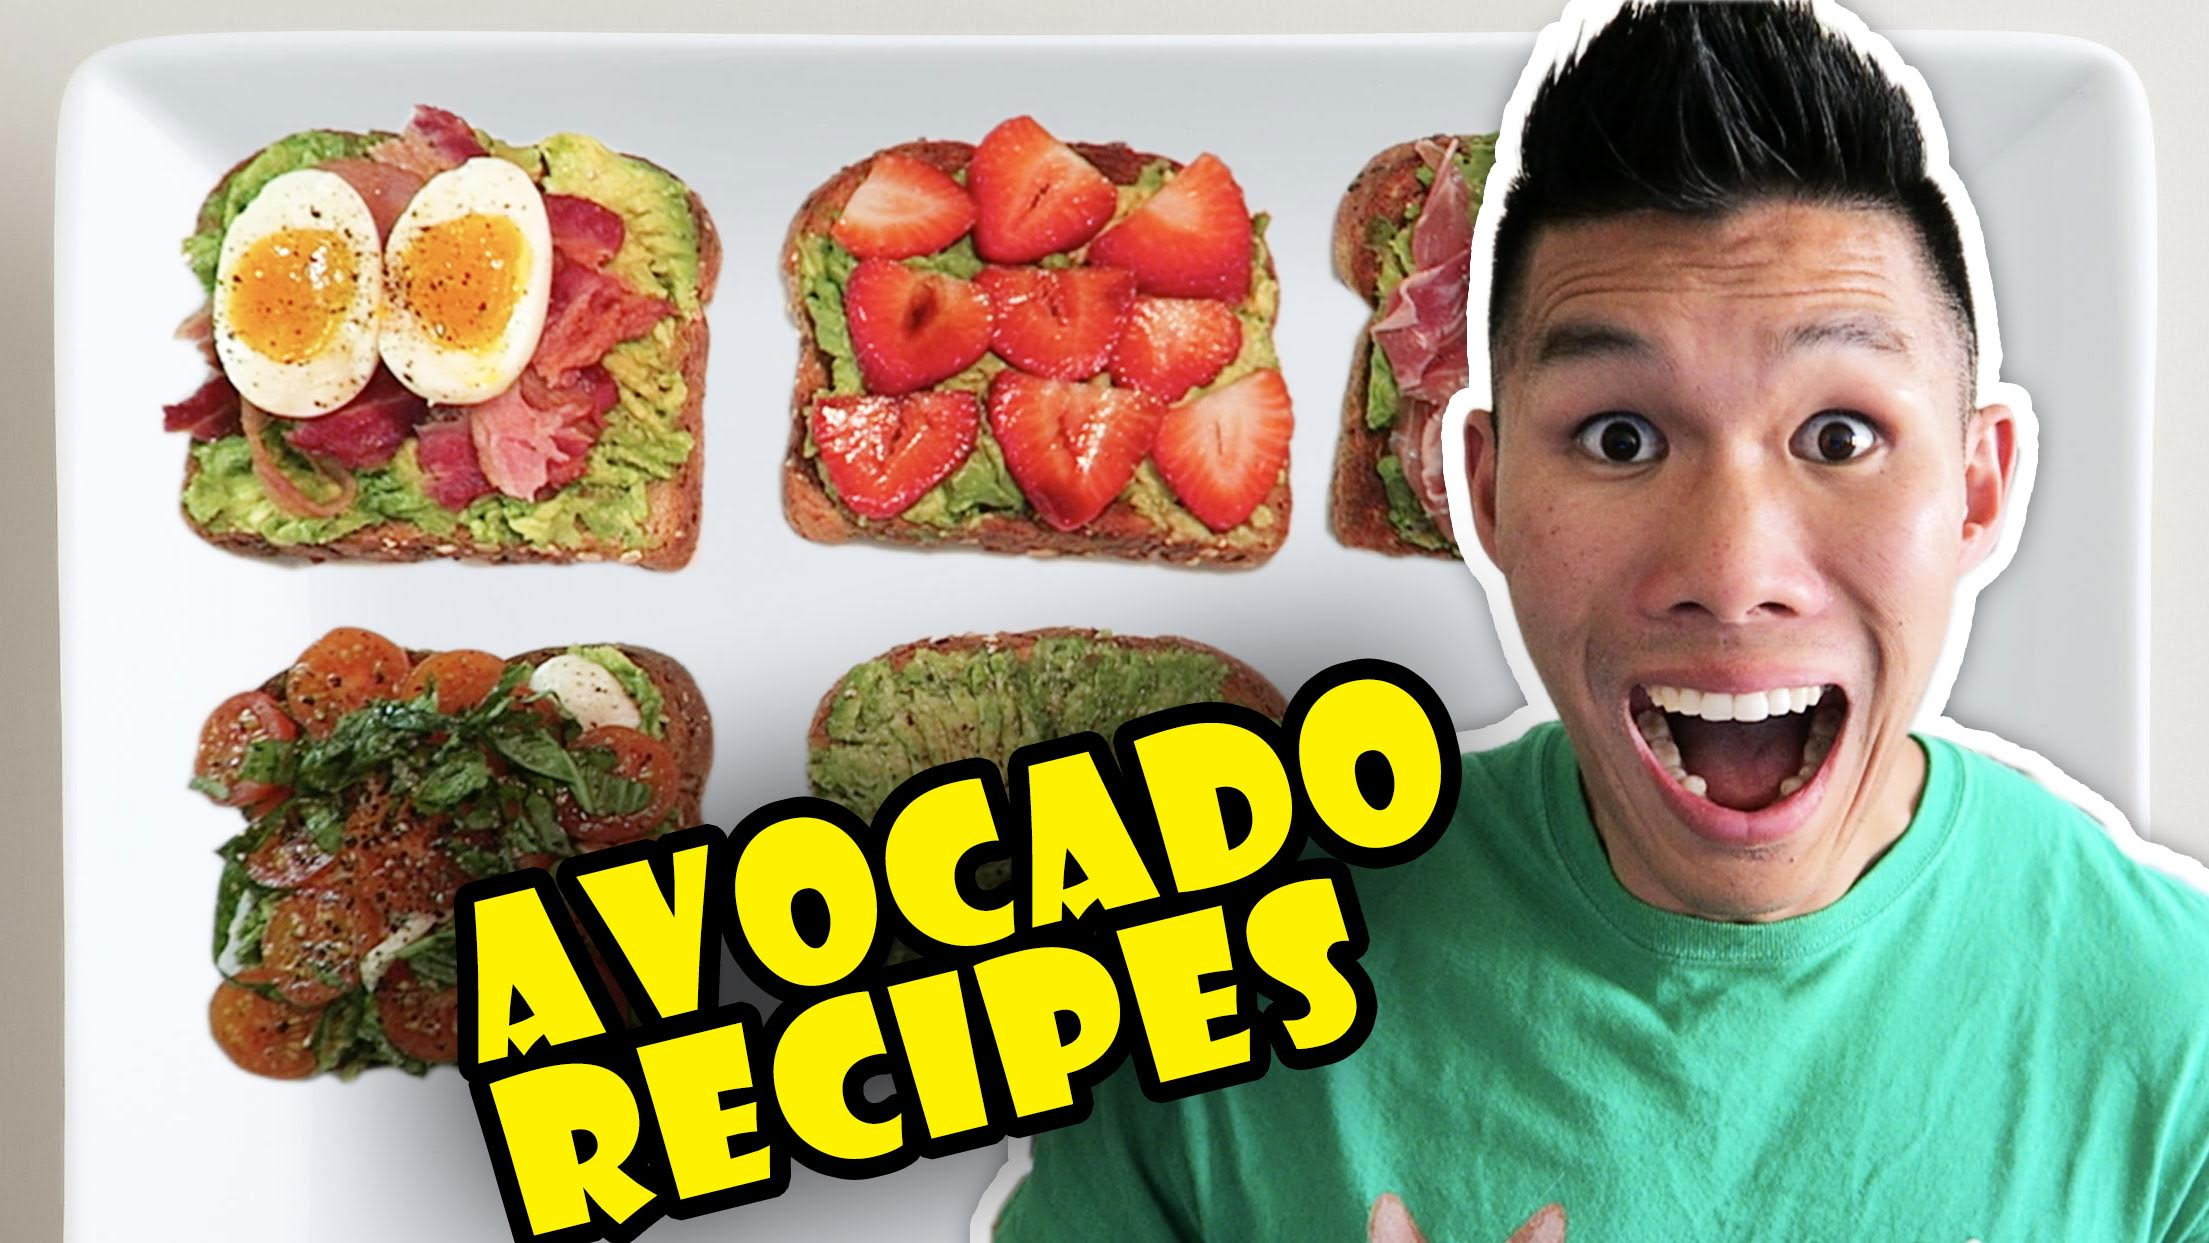 BUZZFEED FOOD'S AVOCADO RECIPES Taste Tested